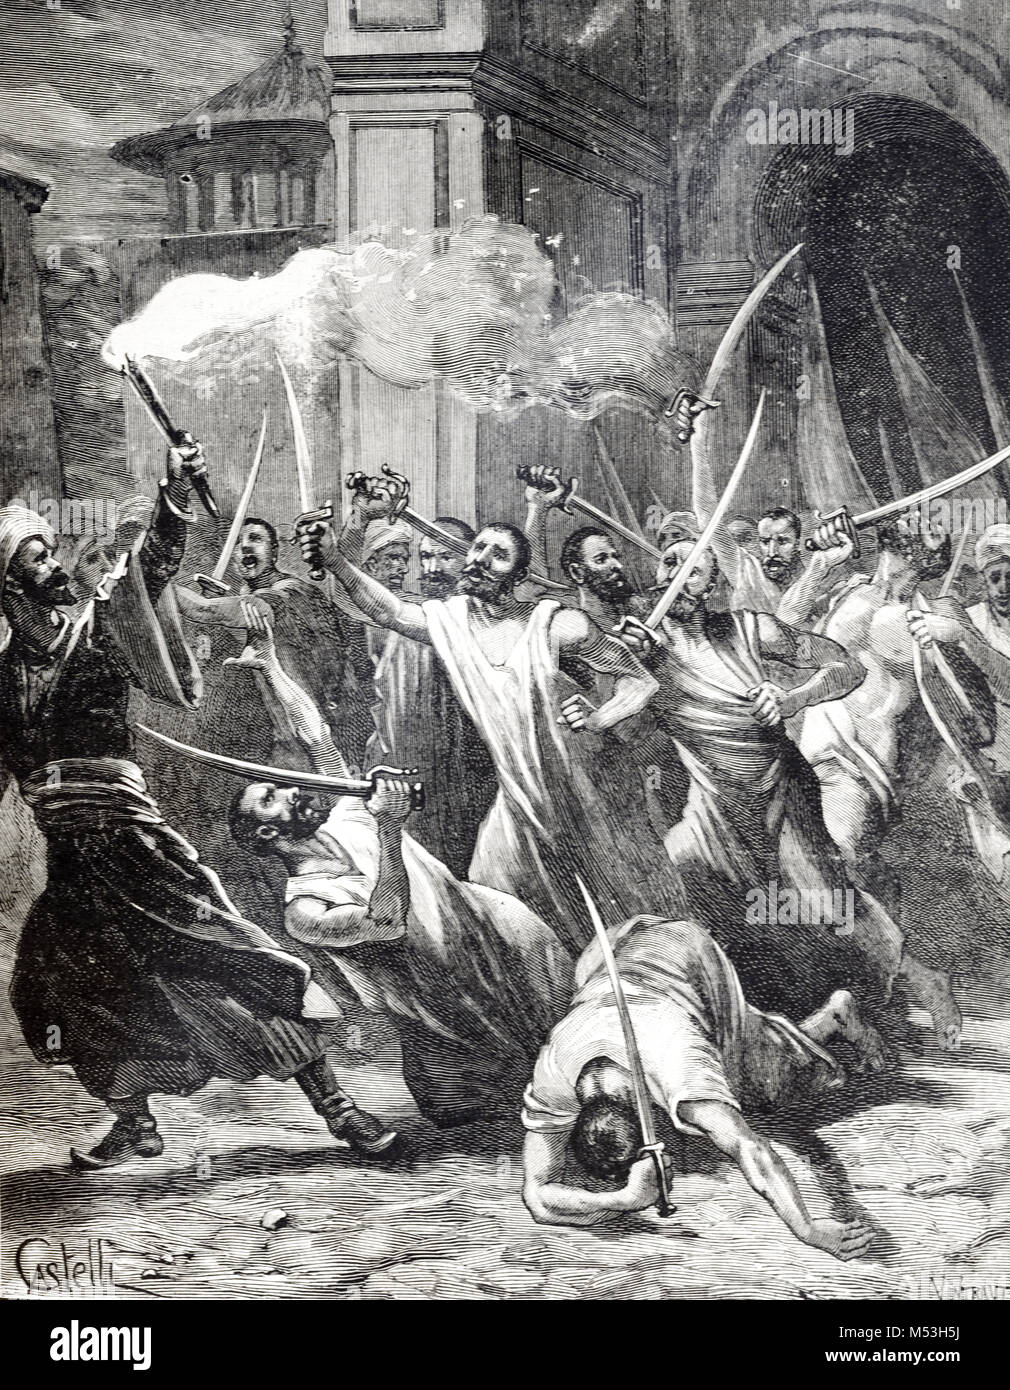 New Year Day Celebrations by Muslim Fanatics or Penitents Wielding Swords or Sabres, Persia or Iran (Engraving, - Stock Image